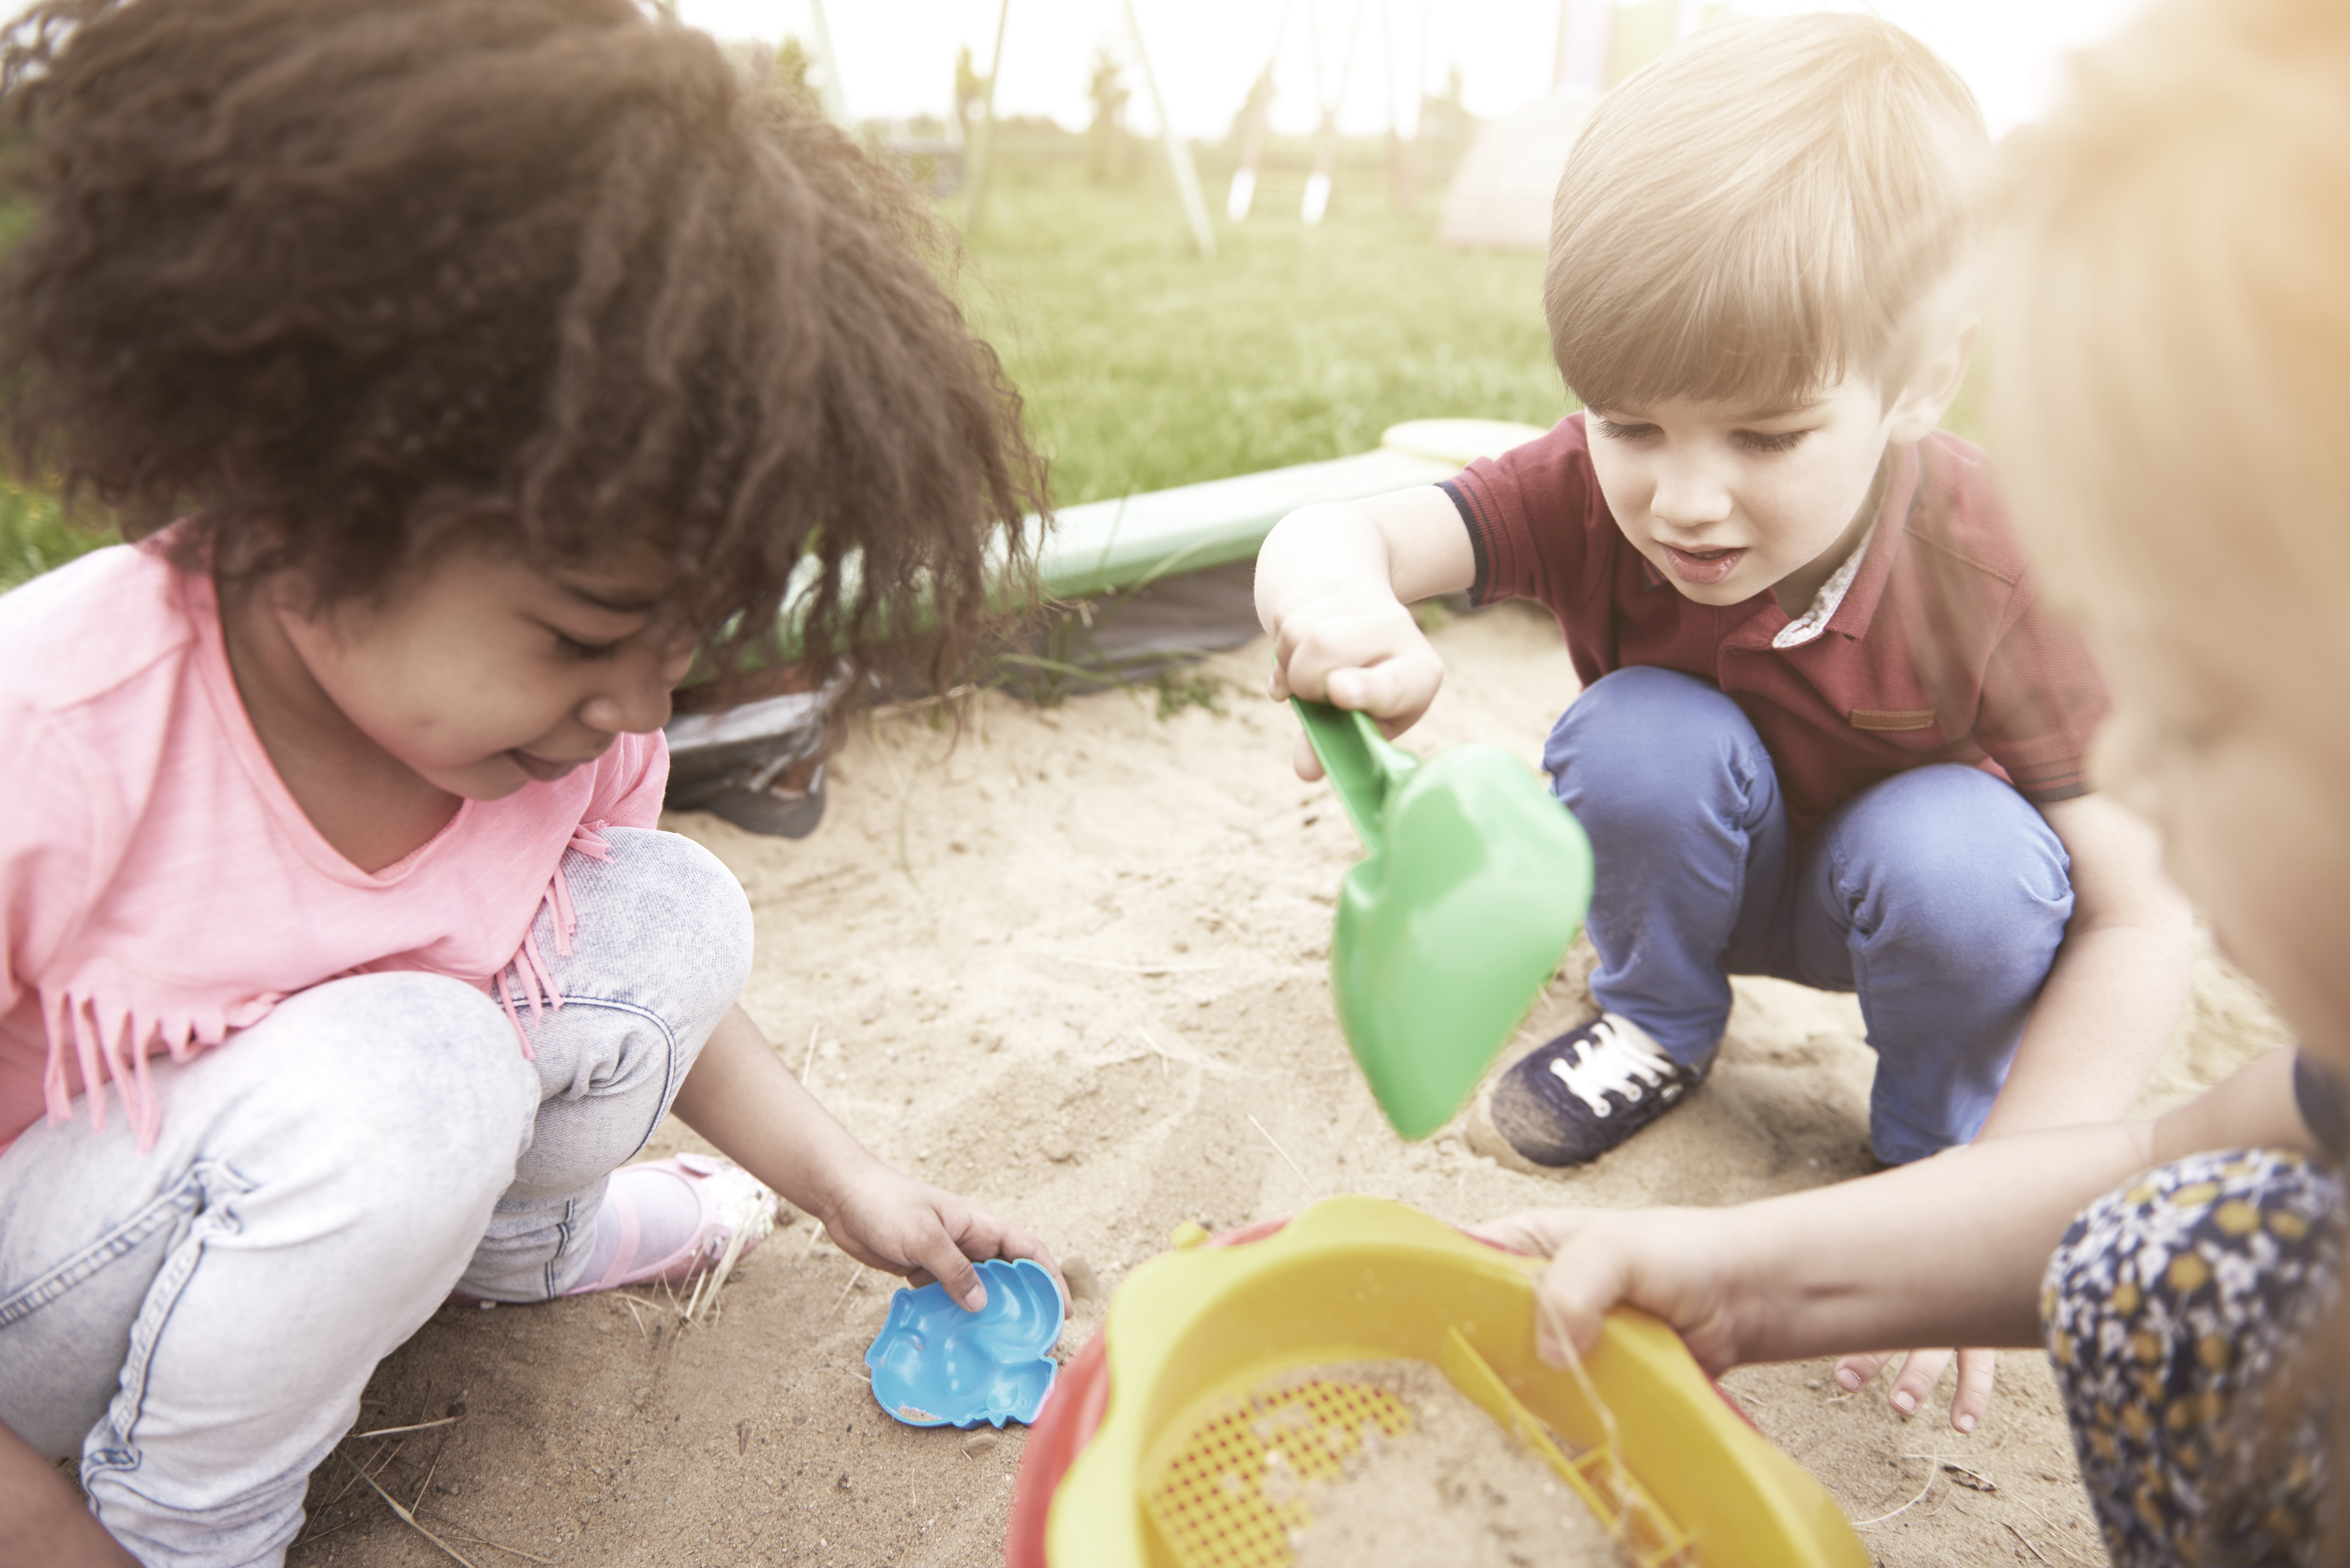 Make Playground Safety a Priority